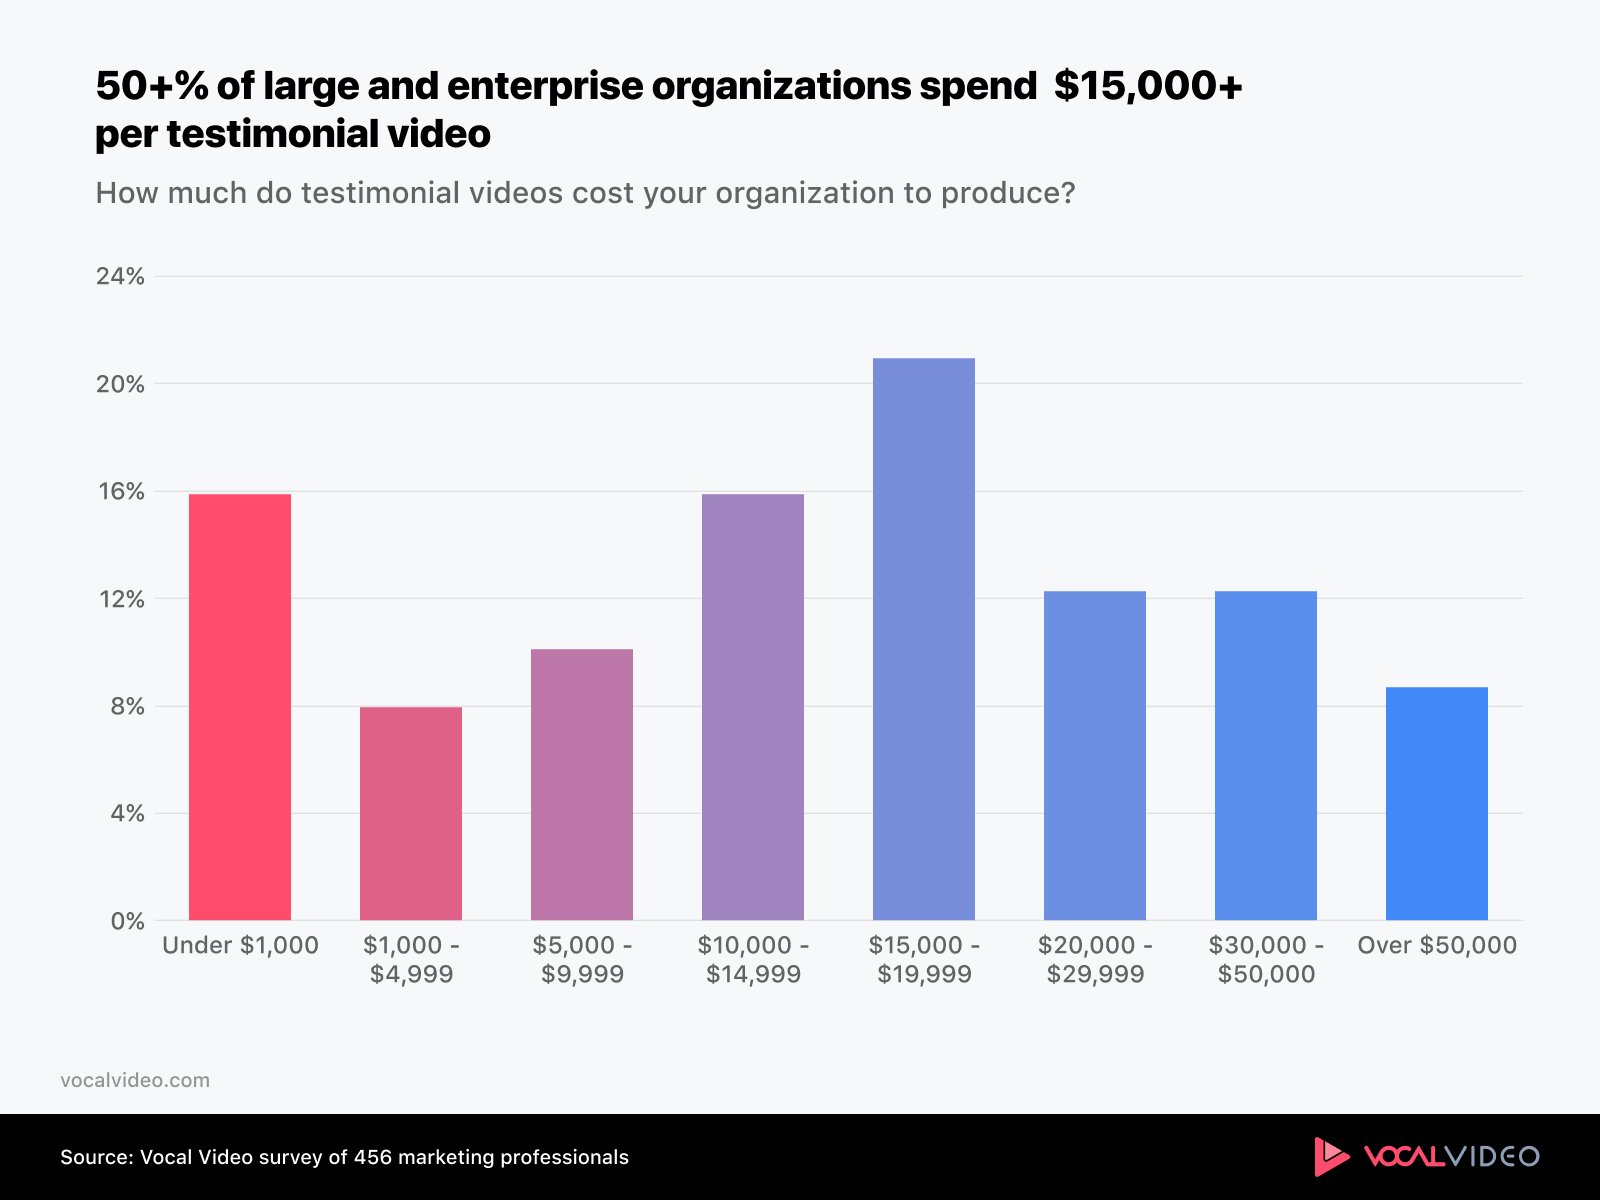 Chart showing that majority of large and enterprise organizations spend $15,000 per testimonial video.